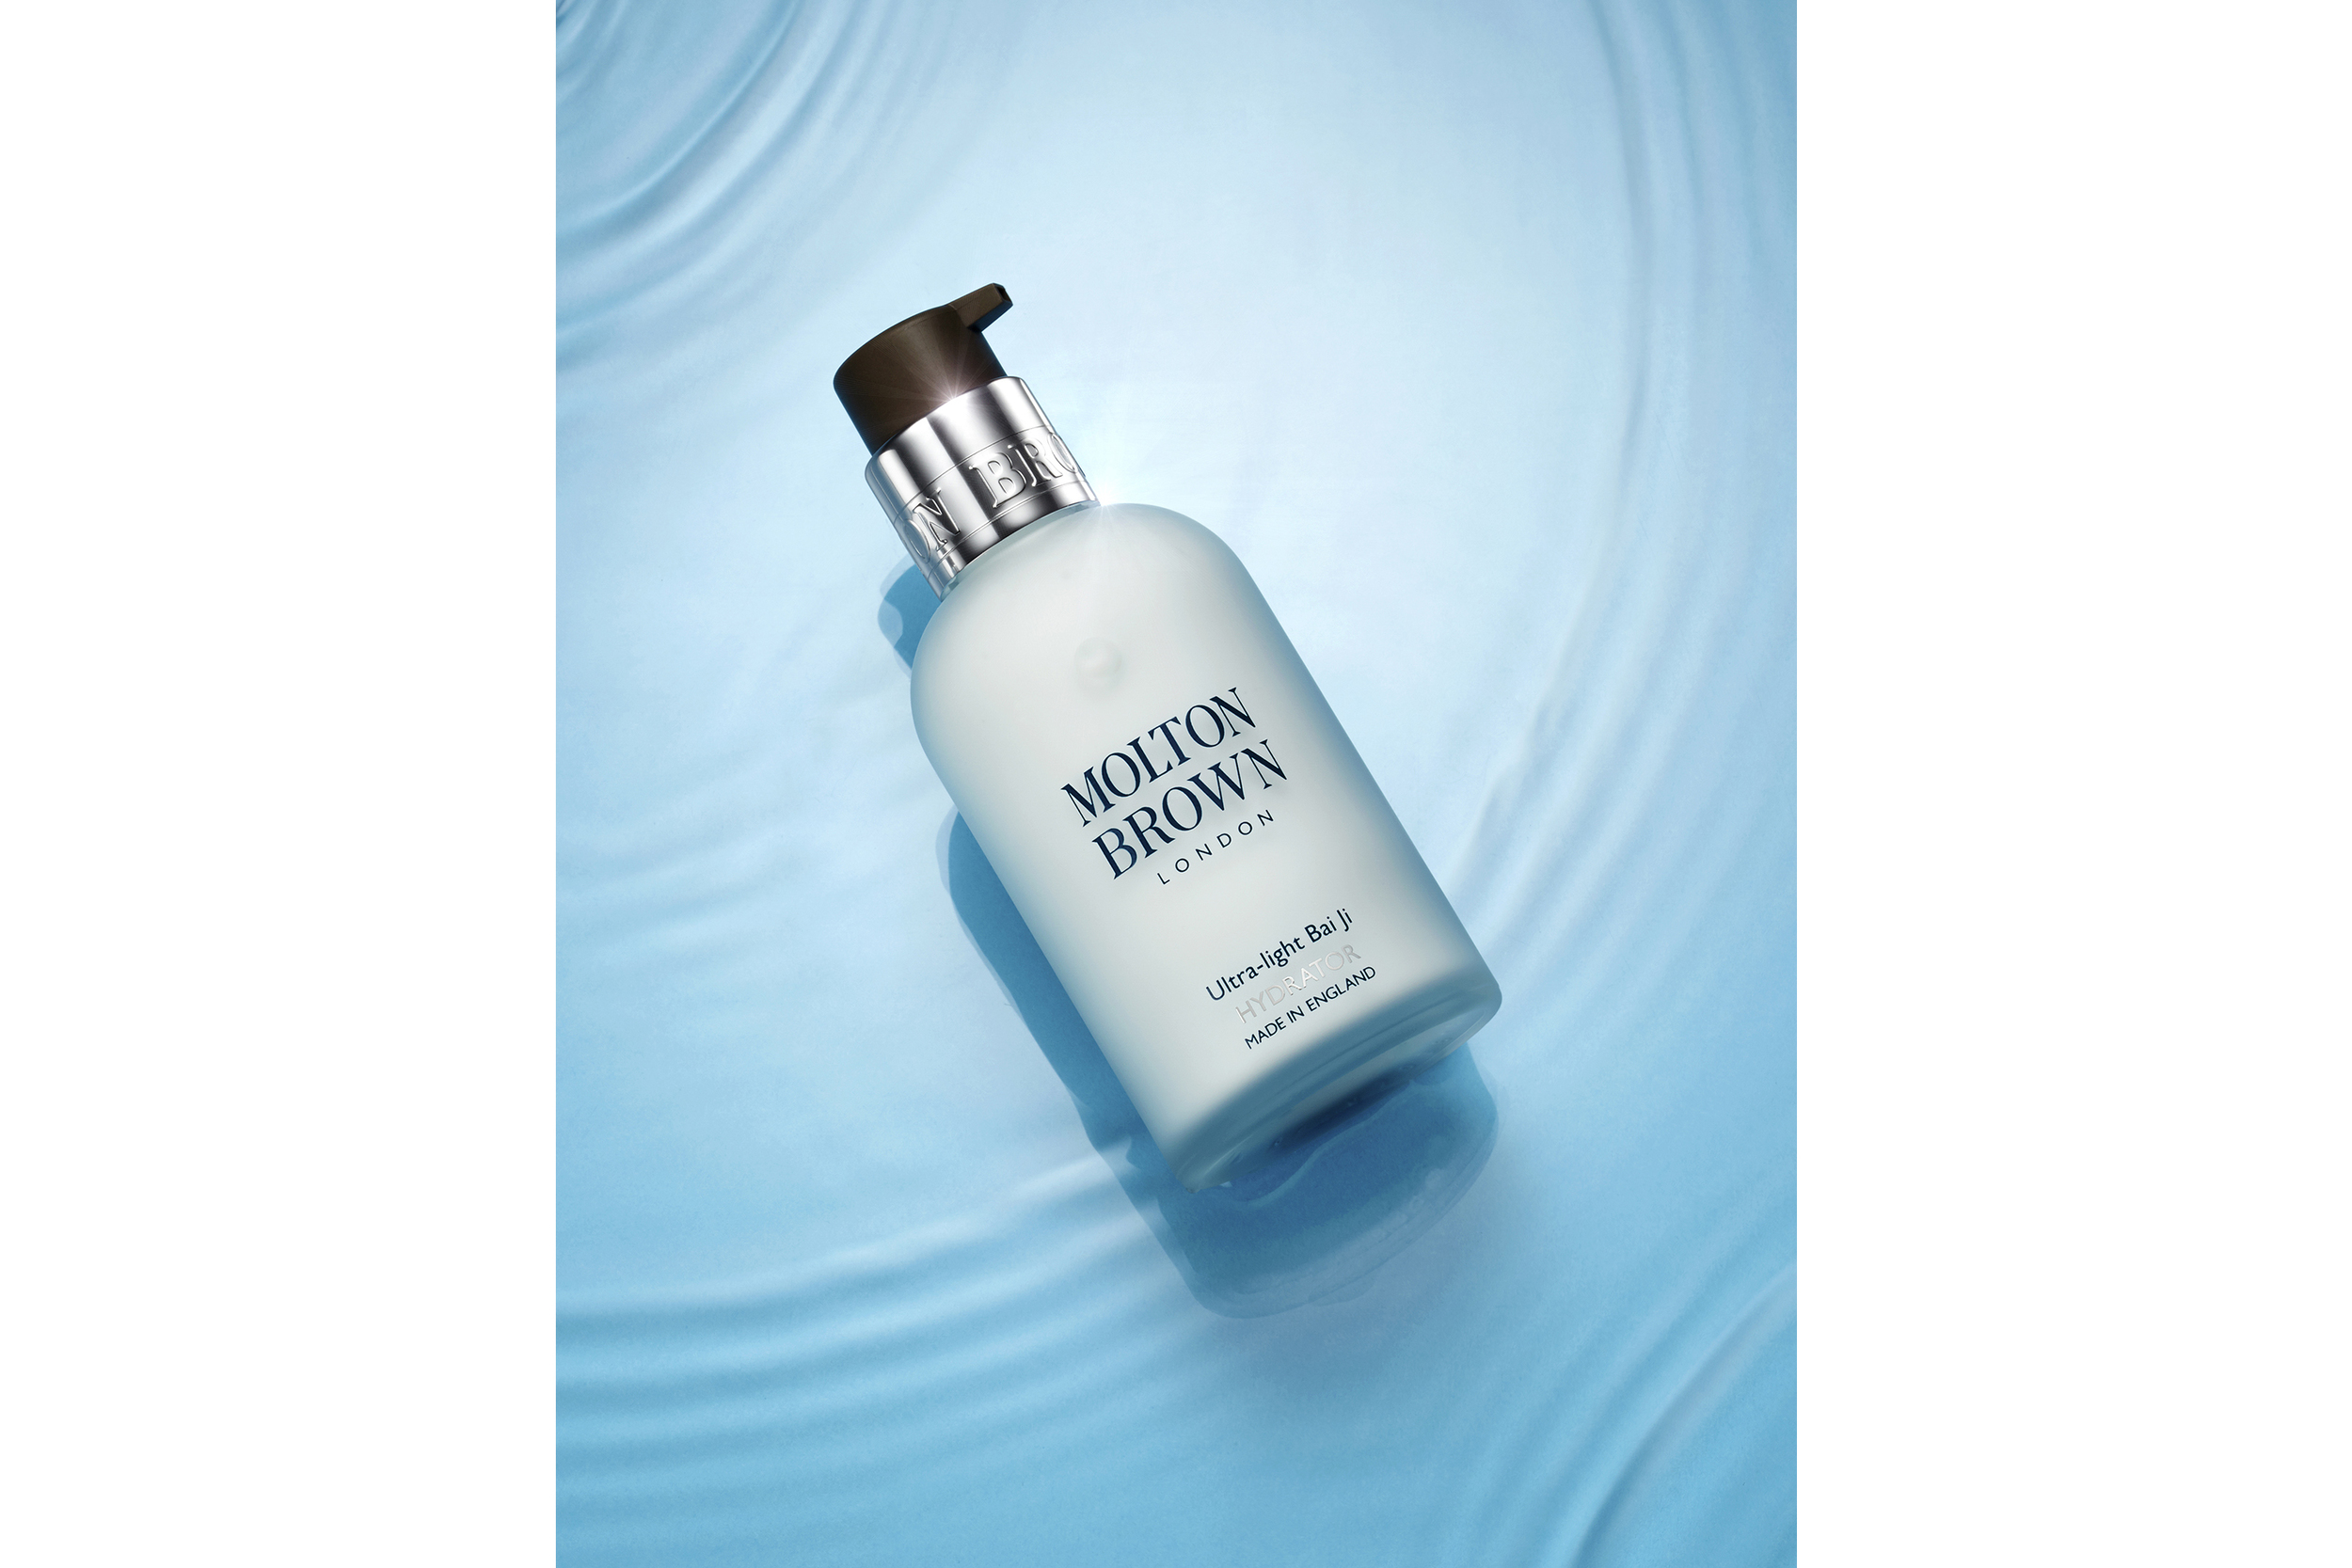 Molton Brown London Hydrator Packshot by Simon Lyle Ritchie